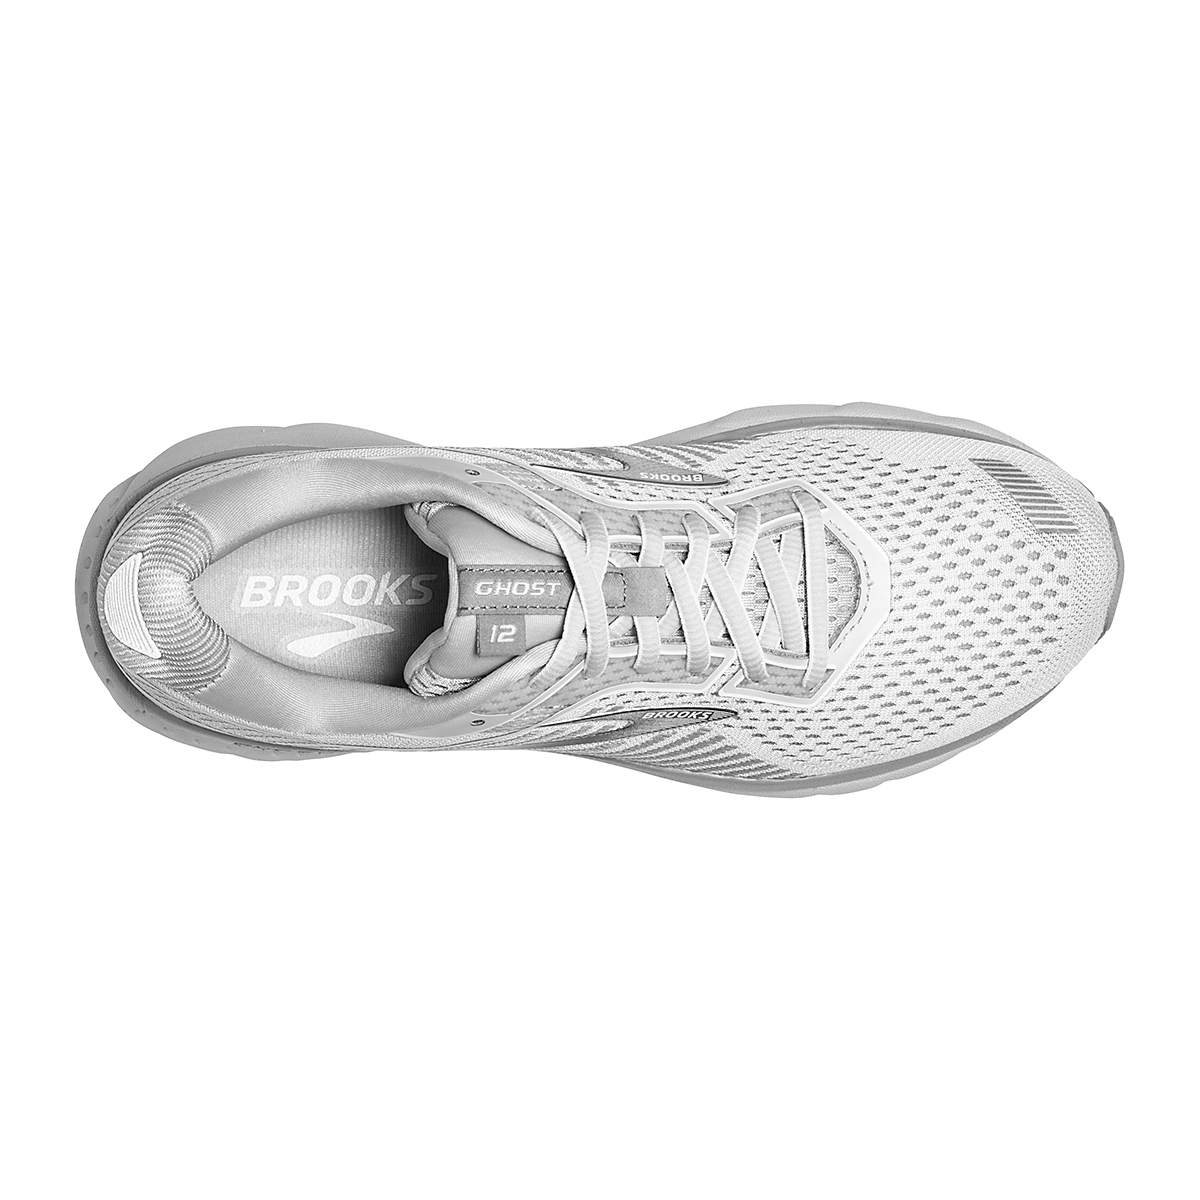 Women's Brooks Ghost 12 Running Shoe - Color: Oyster/Alloy/White - Size: 8.5 - Width: Regular, Oyster/Alloy/White, large, image 5